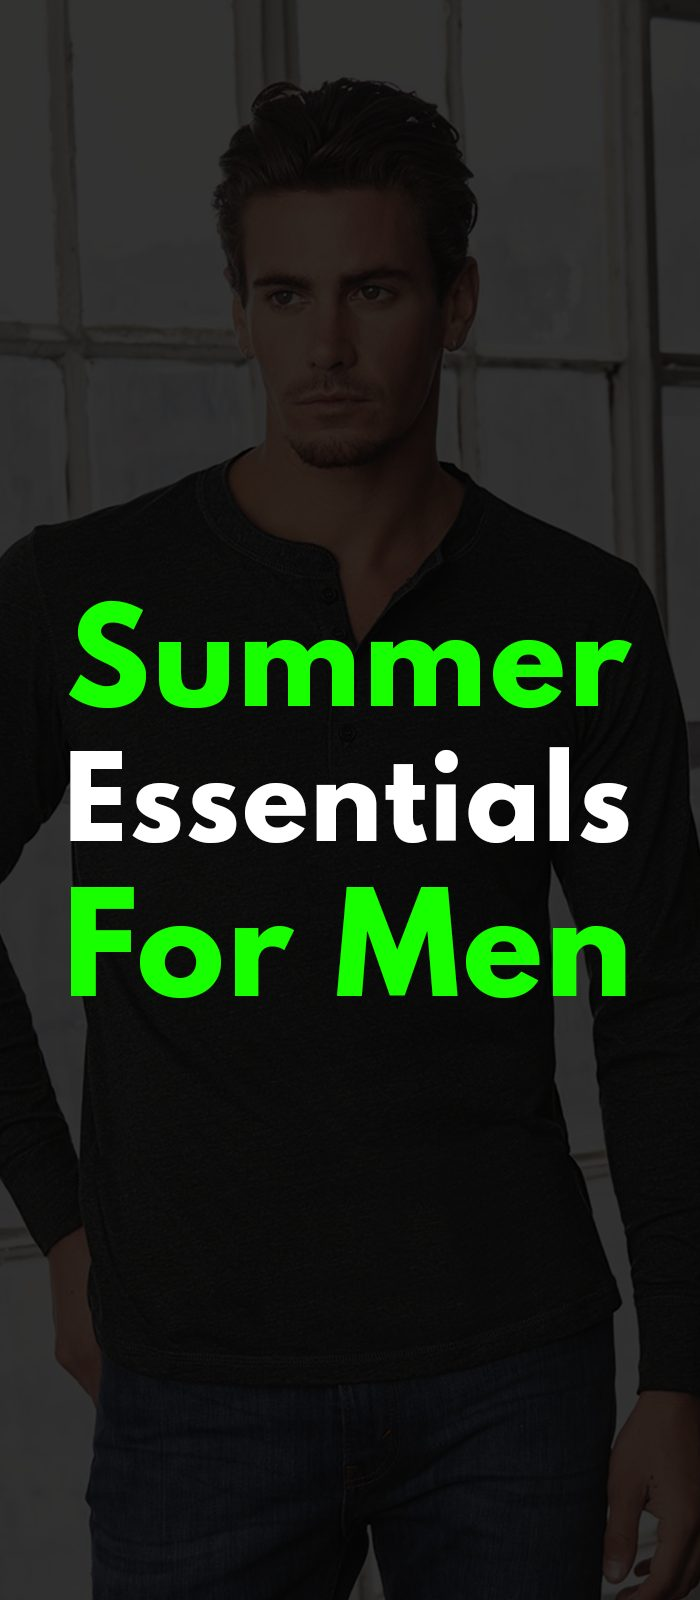 Summer Essentials For Men.